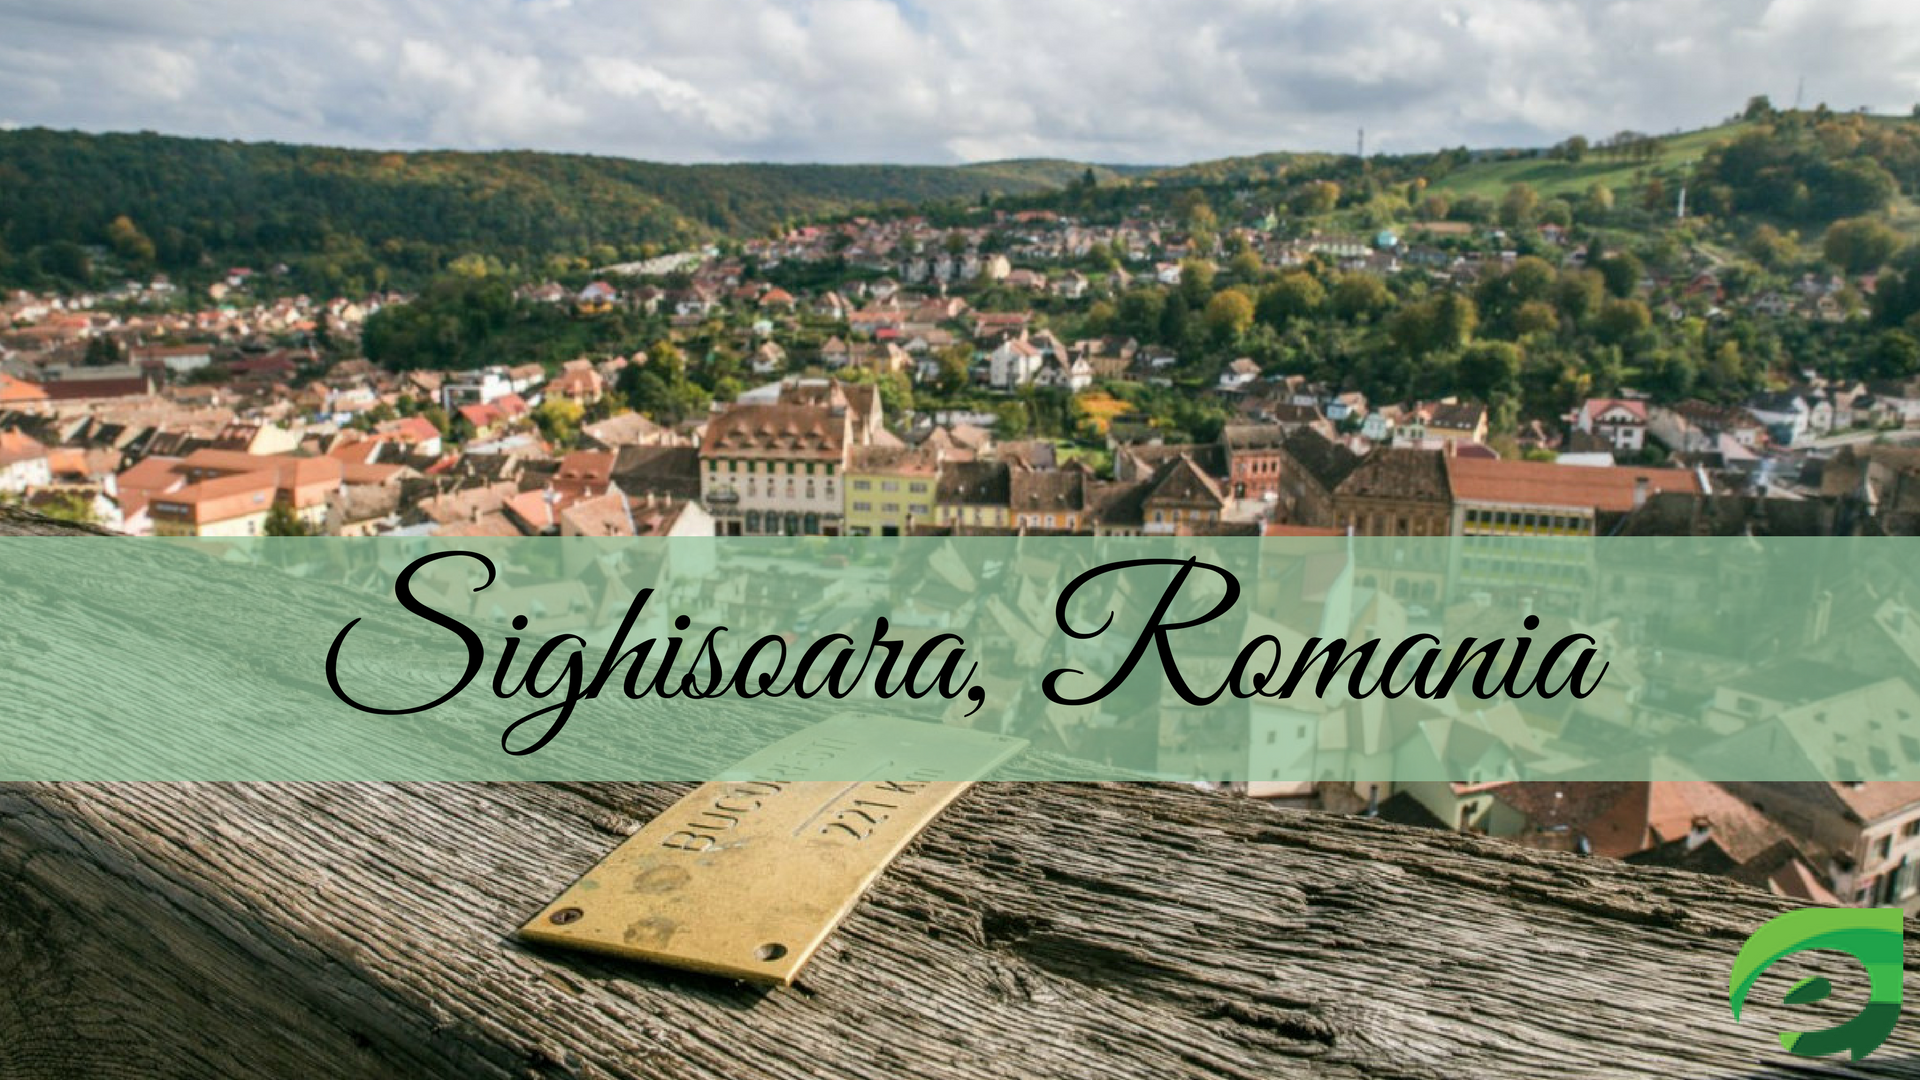 small cities of europe-Sighisoara, Romania